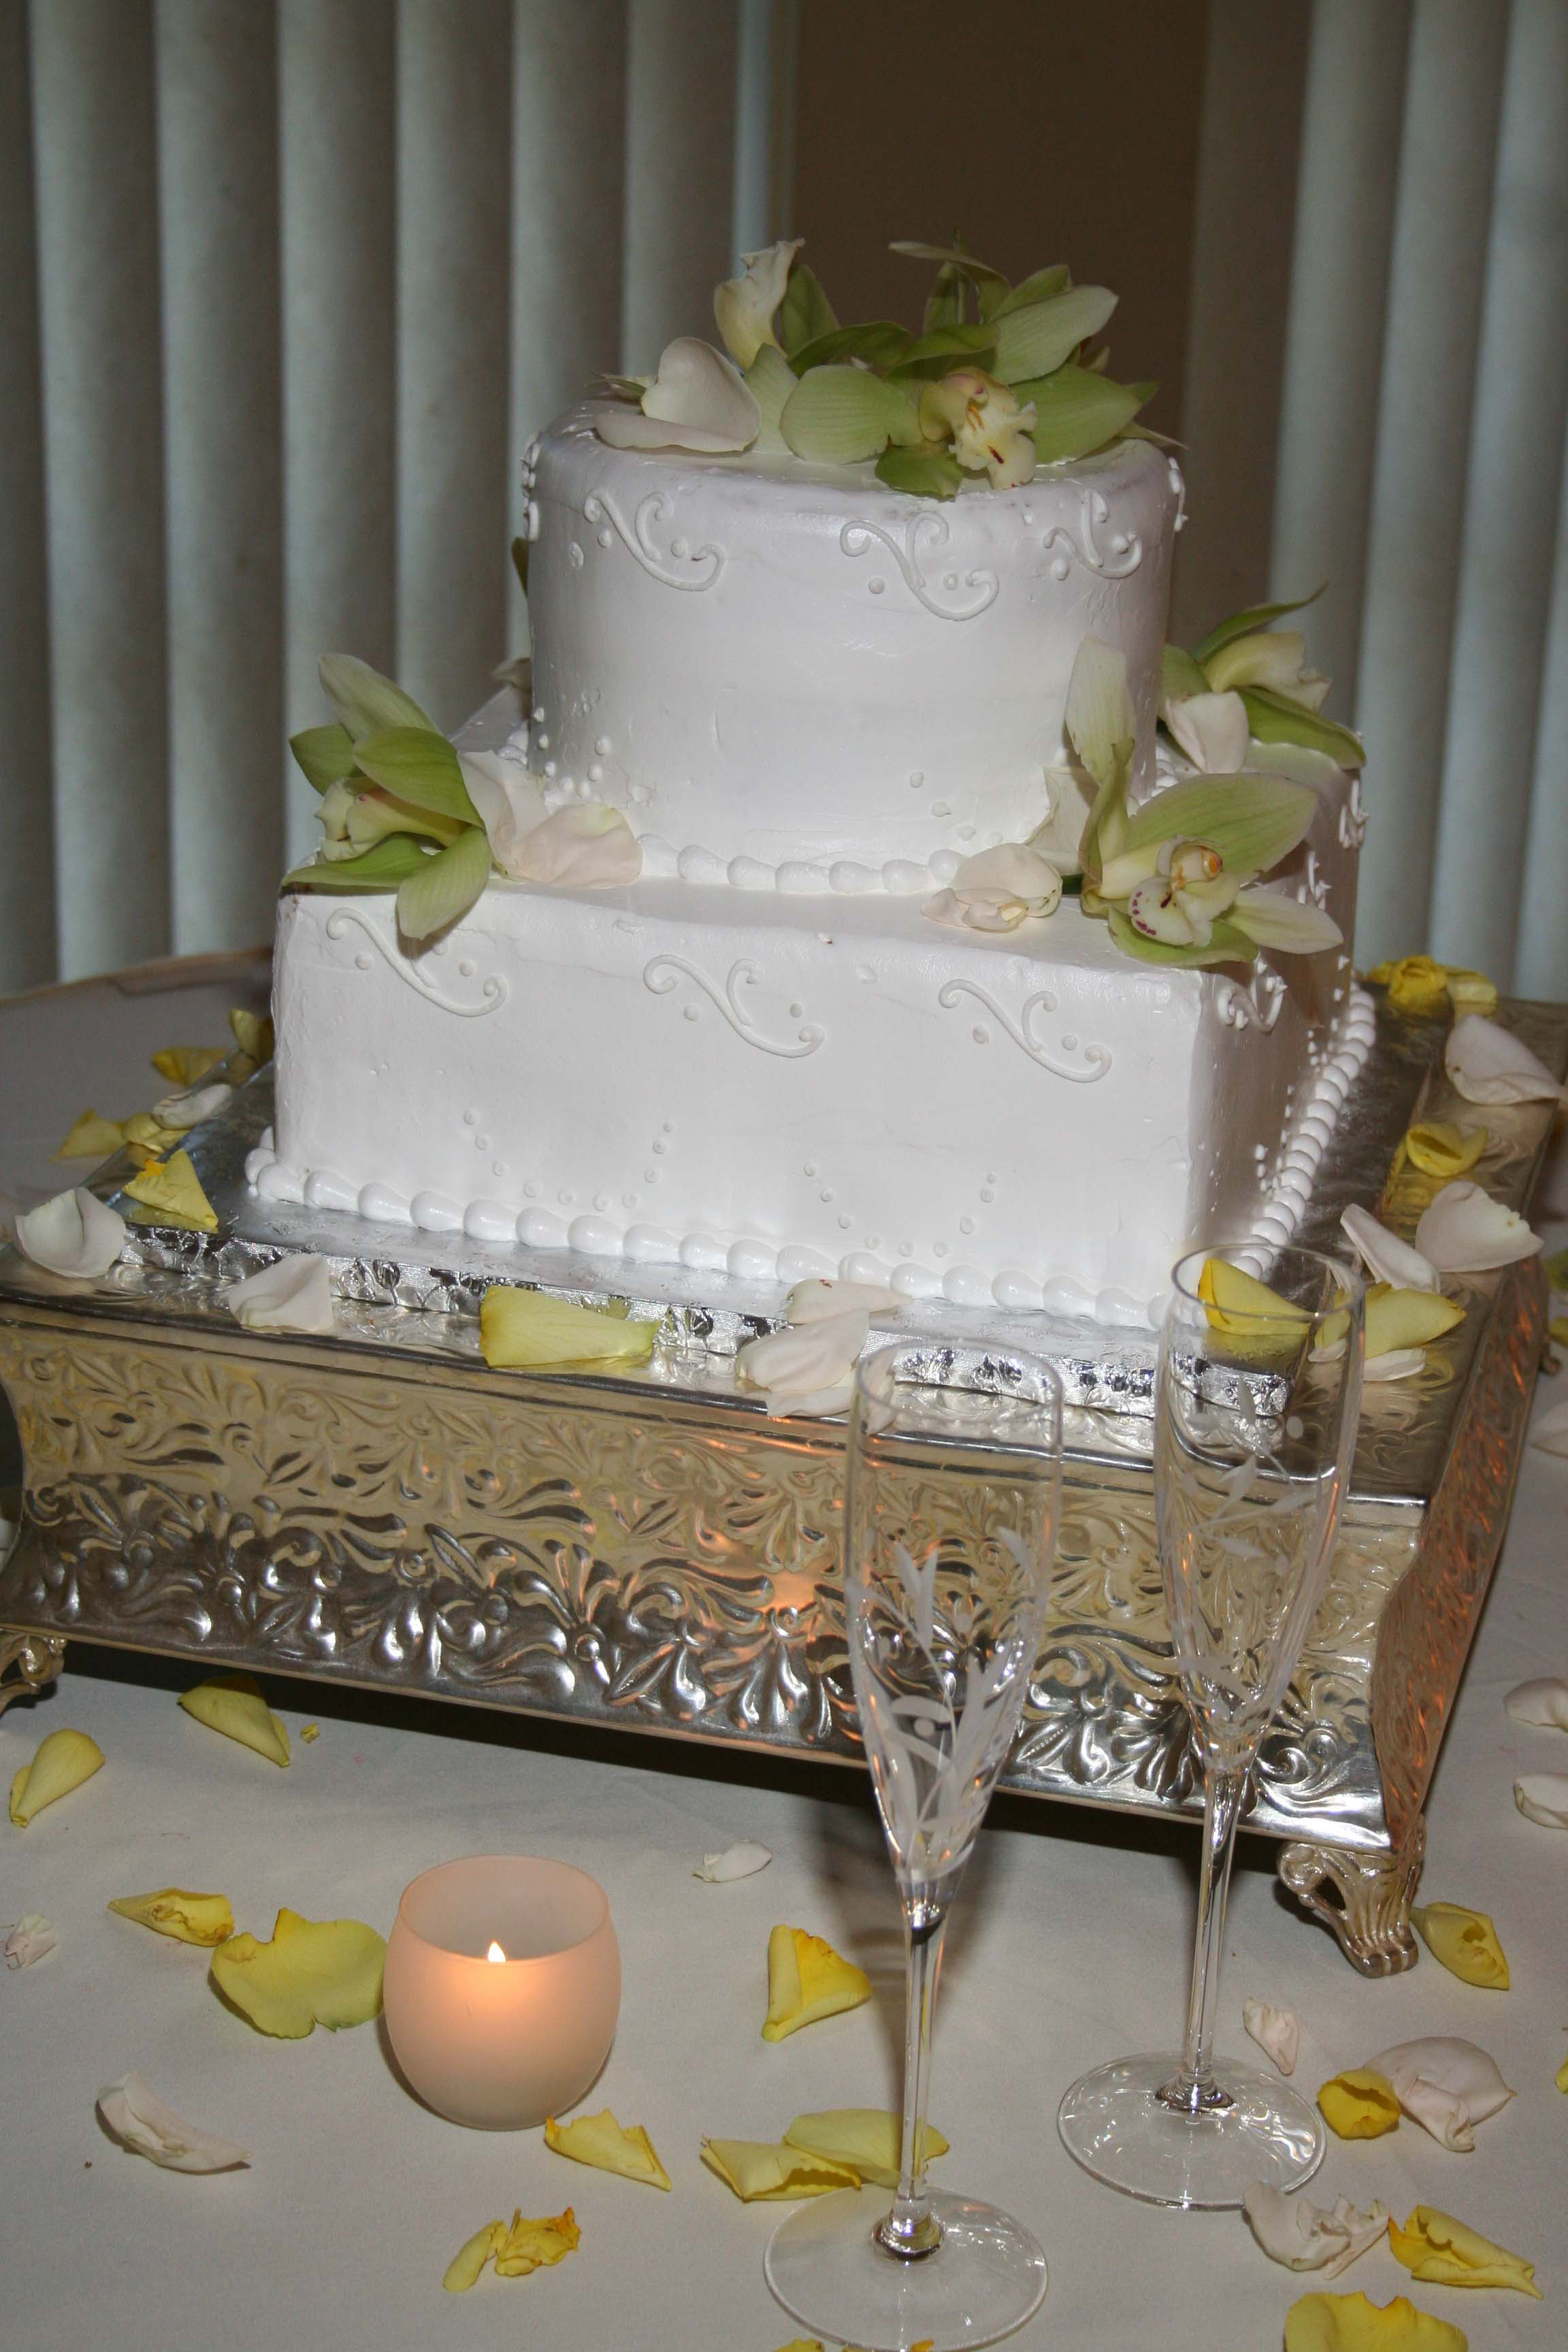 Flowers & Decor, Cakes, green, cake, Flowers, Cake cutting, Wedding cake, Cymbidium orchid, An impressive event, Two-tier cake